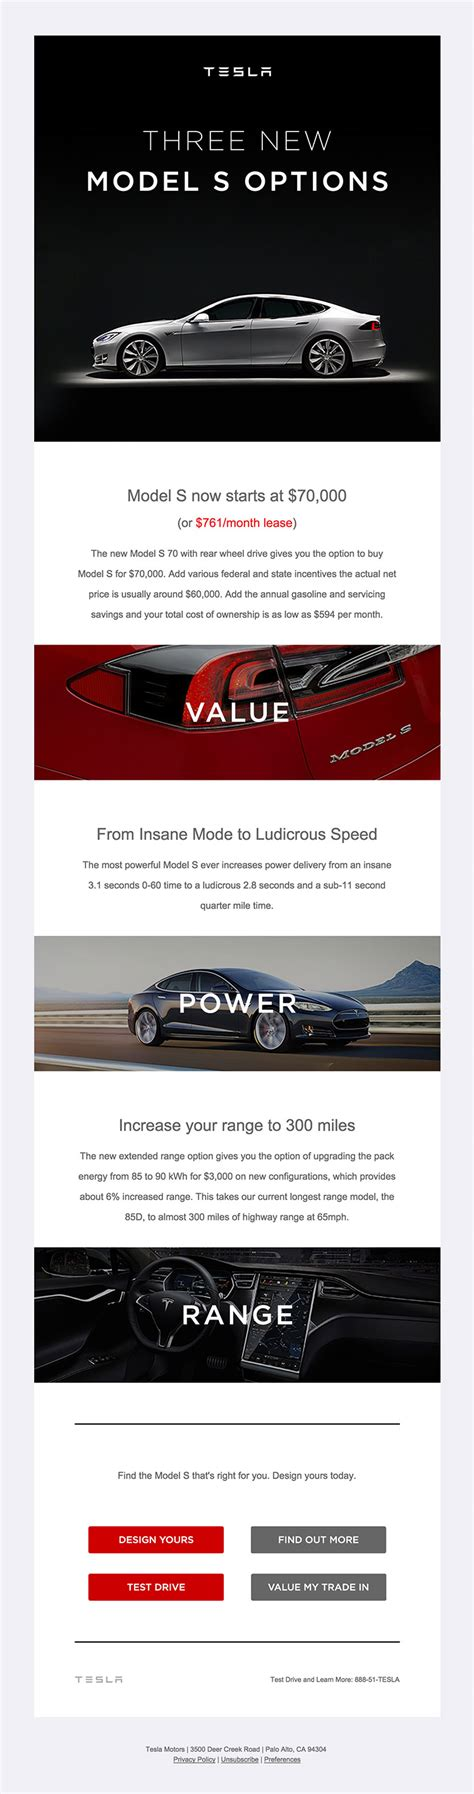 tesla model s choices html email gallery